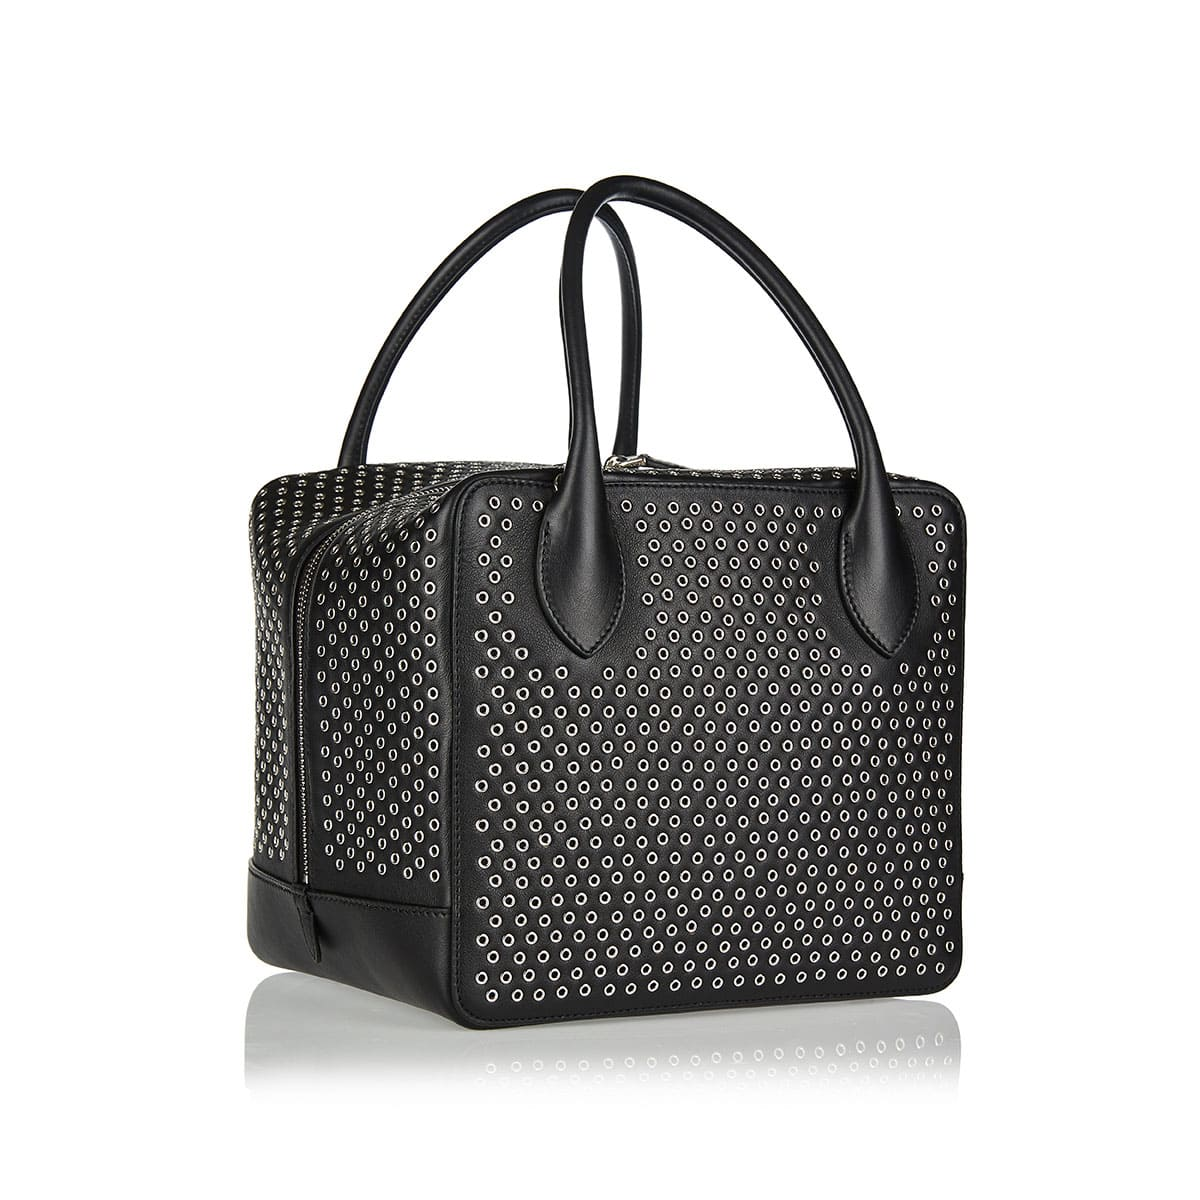 Elba studded leather shoulder bag